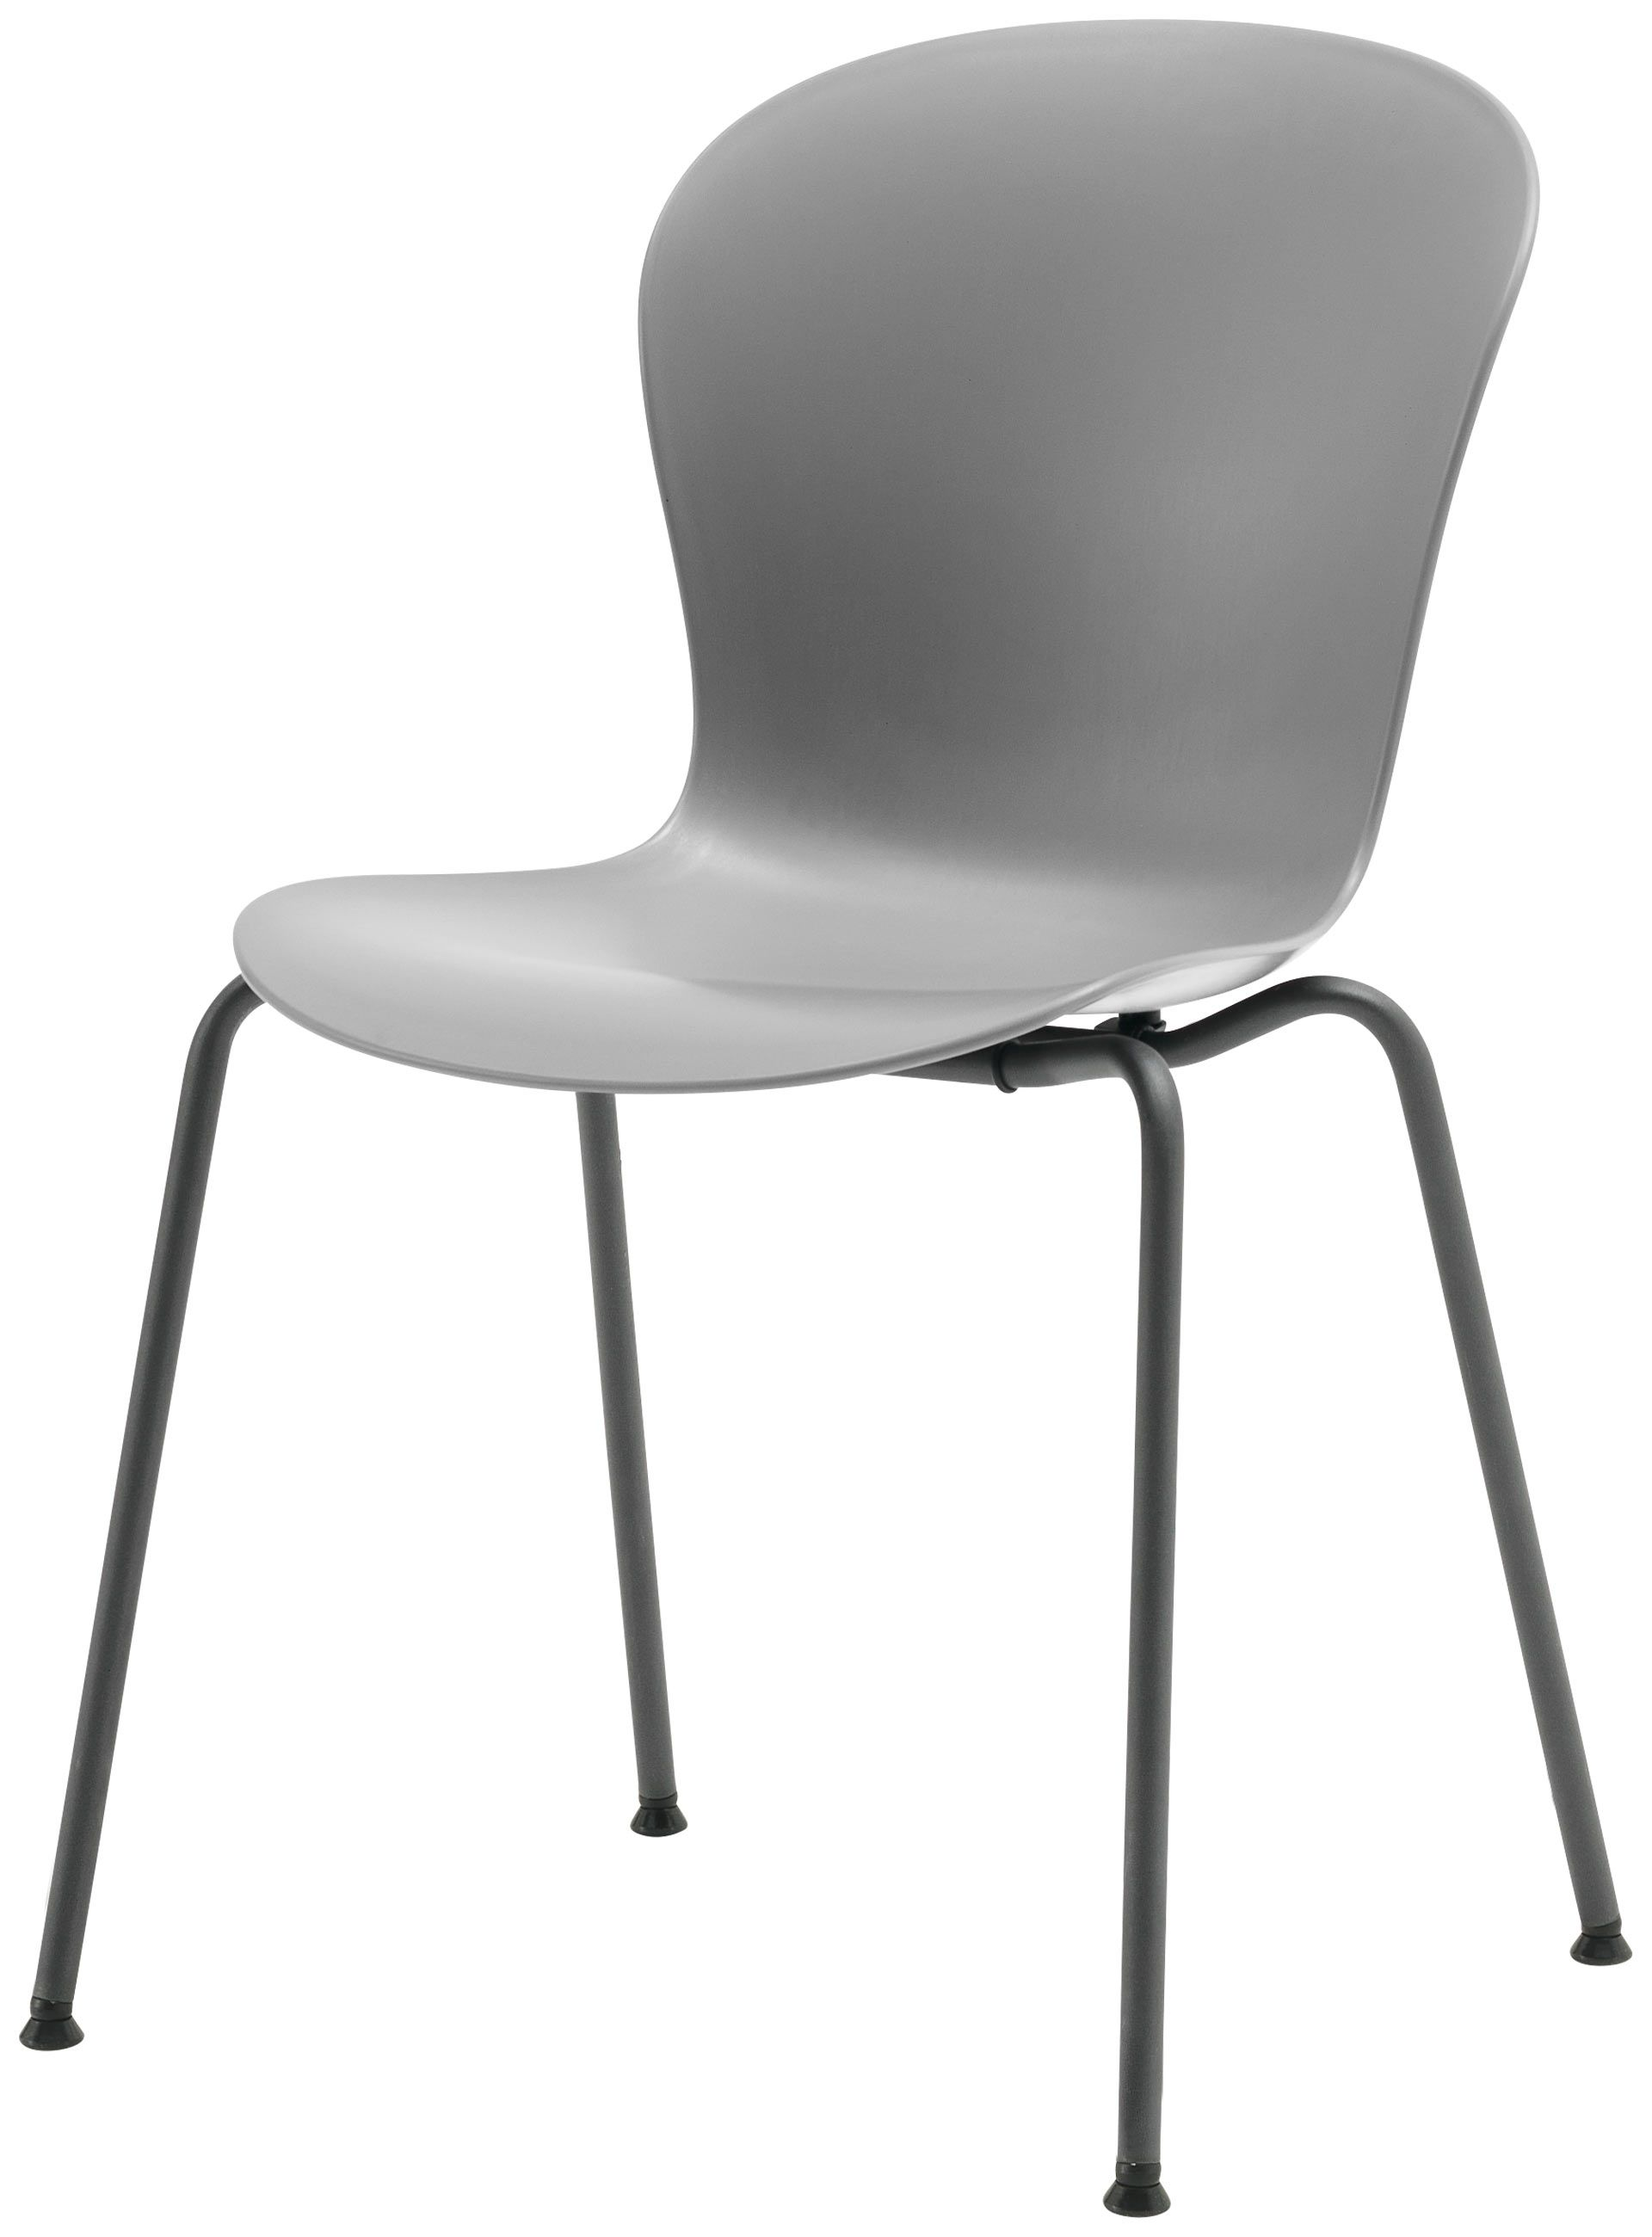 Modern Dining Chairs  Dining Chair Sydney  Designer Dining Chairs    BoConcept Furniture Sydney Crows Nest Moore Park in Australia. Adelaide Stuhl von BoConcept    Furniture   Pinterest   UX UI